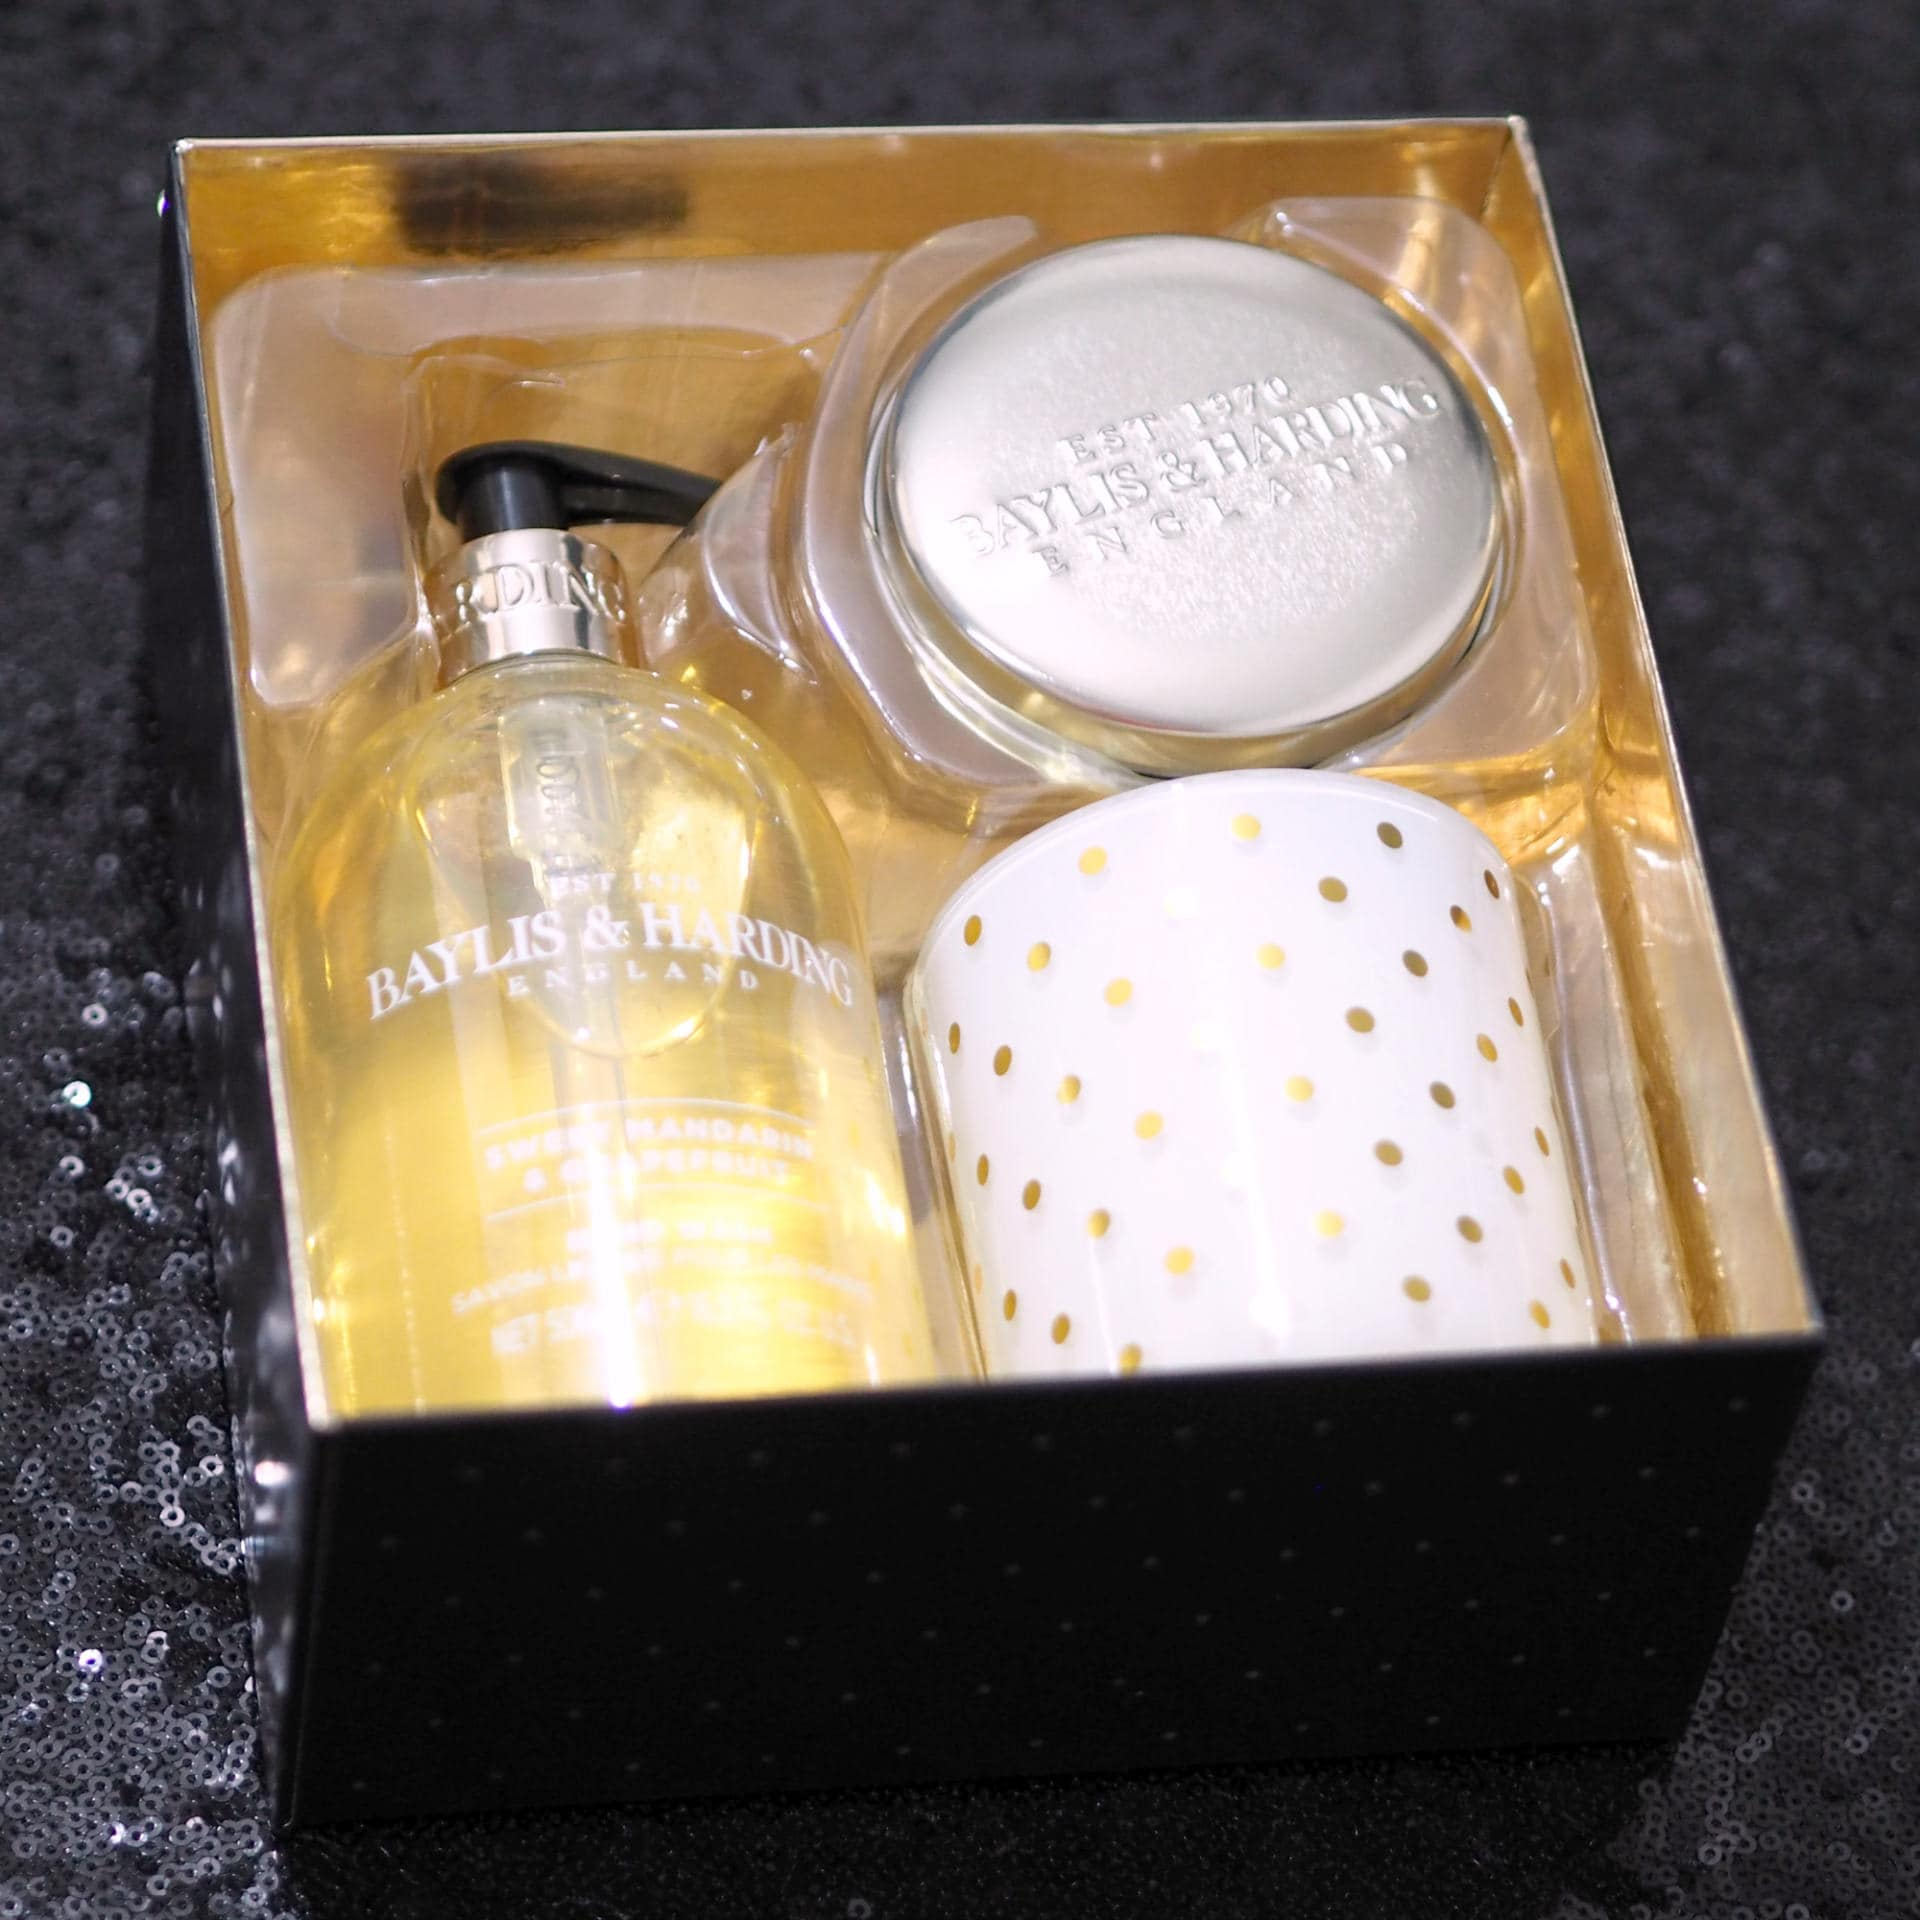 Baylis & Harding Sweet Mandarin & Grapefruit Luxury Home Gift Set